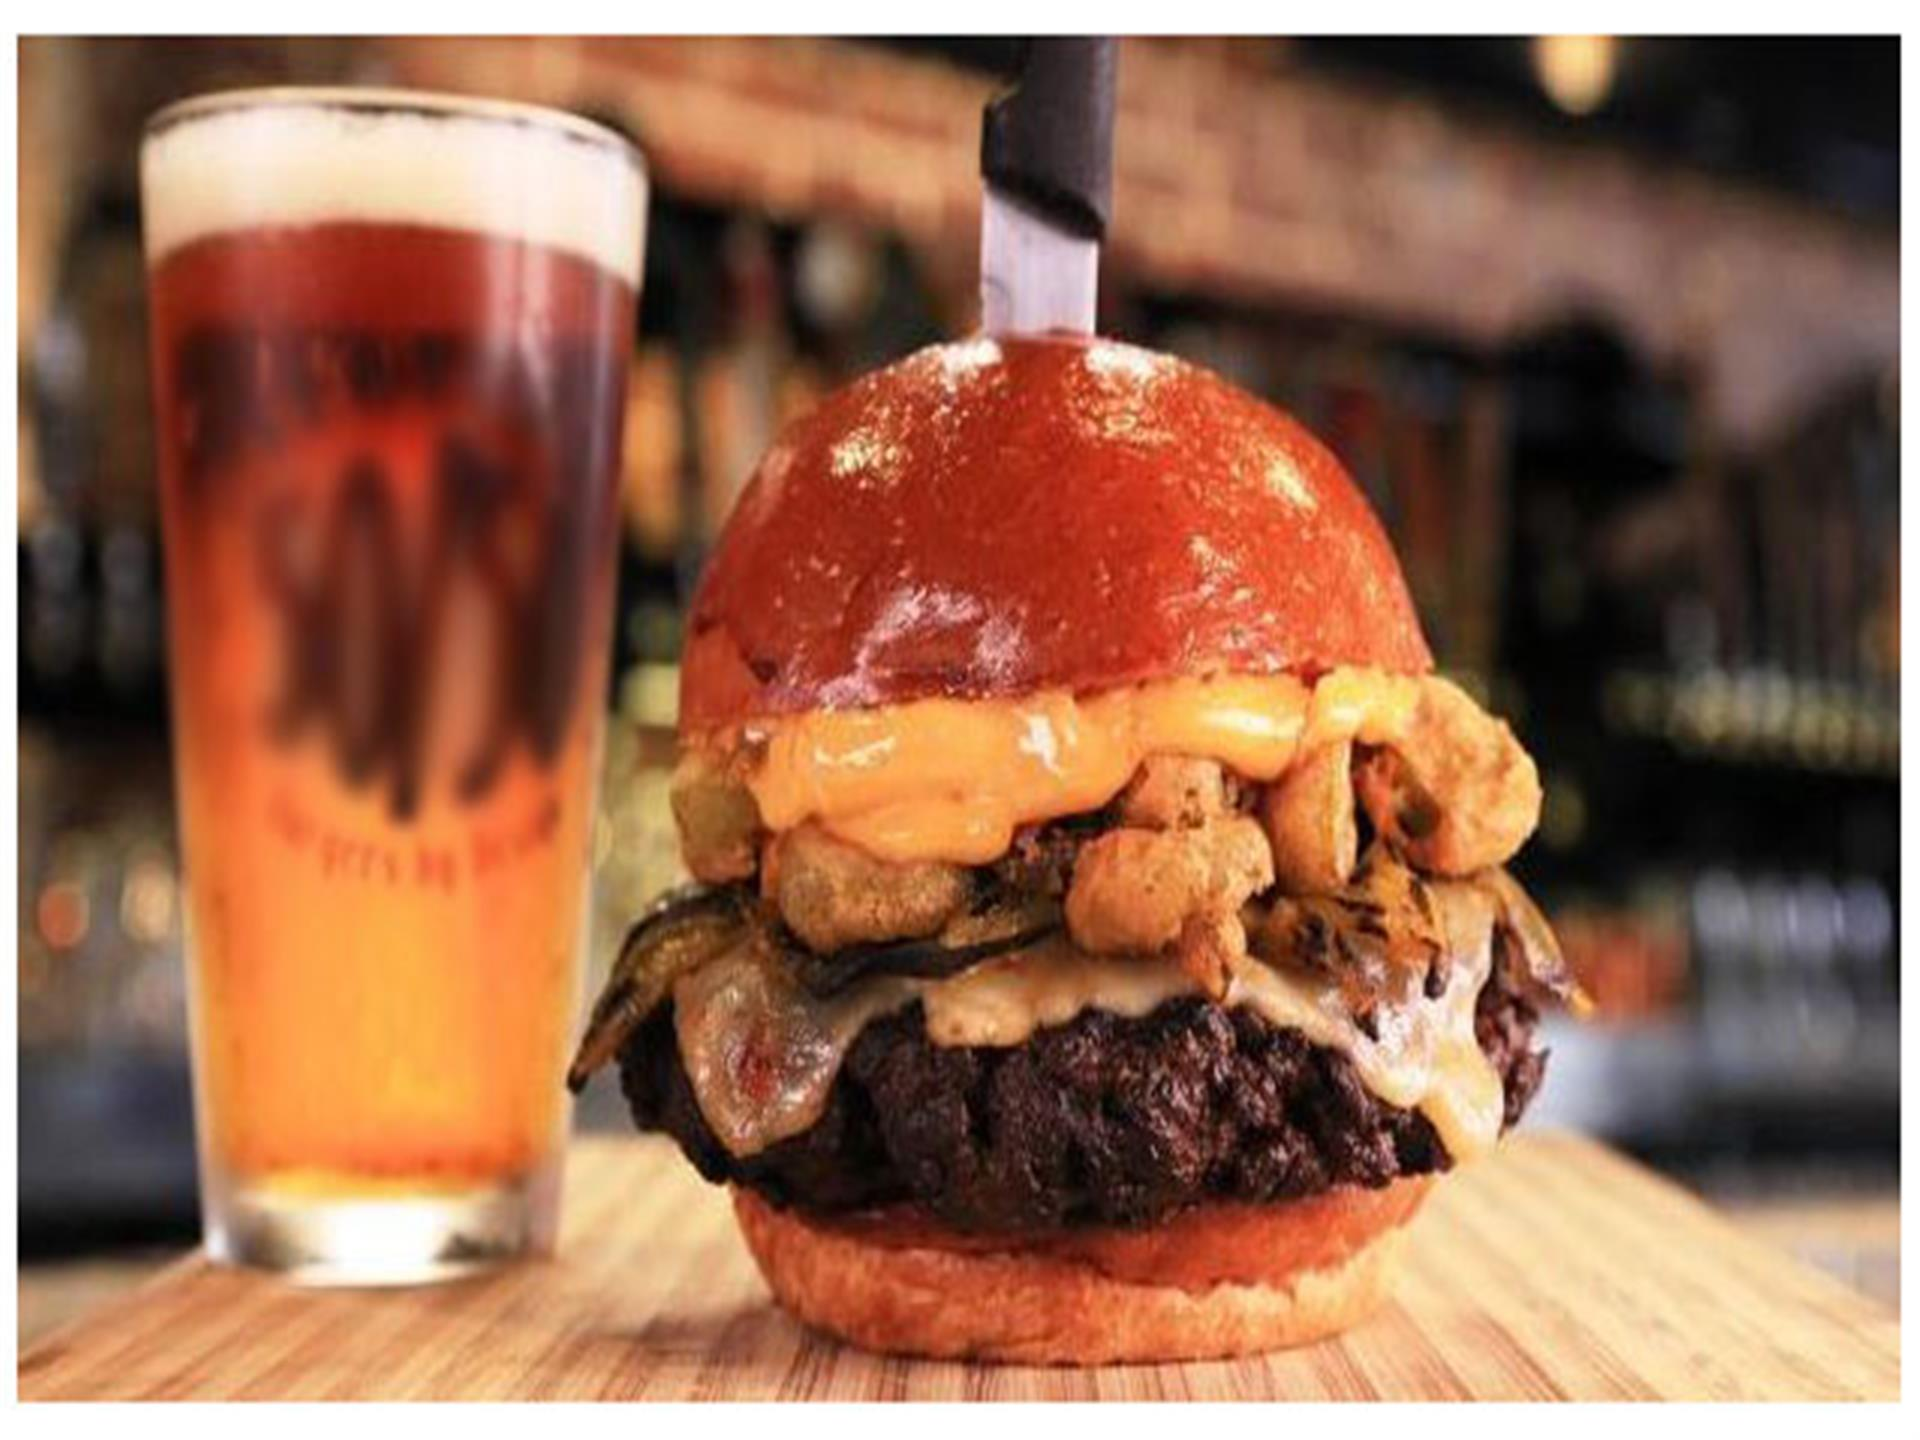 Thick burger with knife through top bun next to full beer glass.